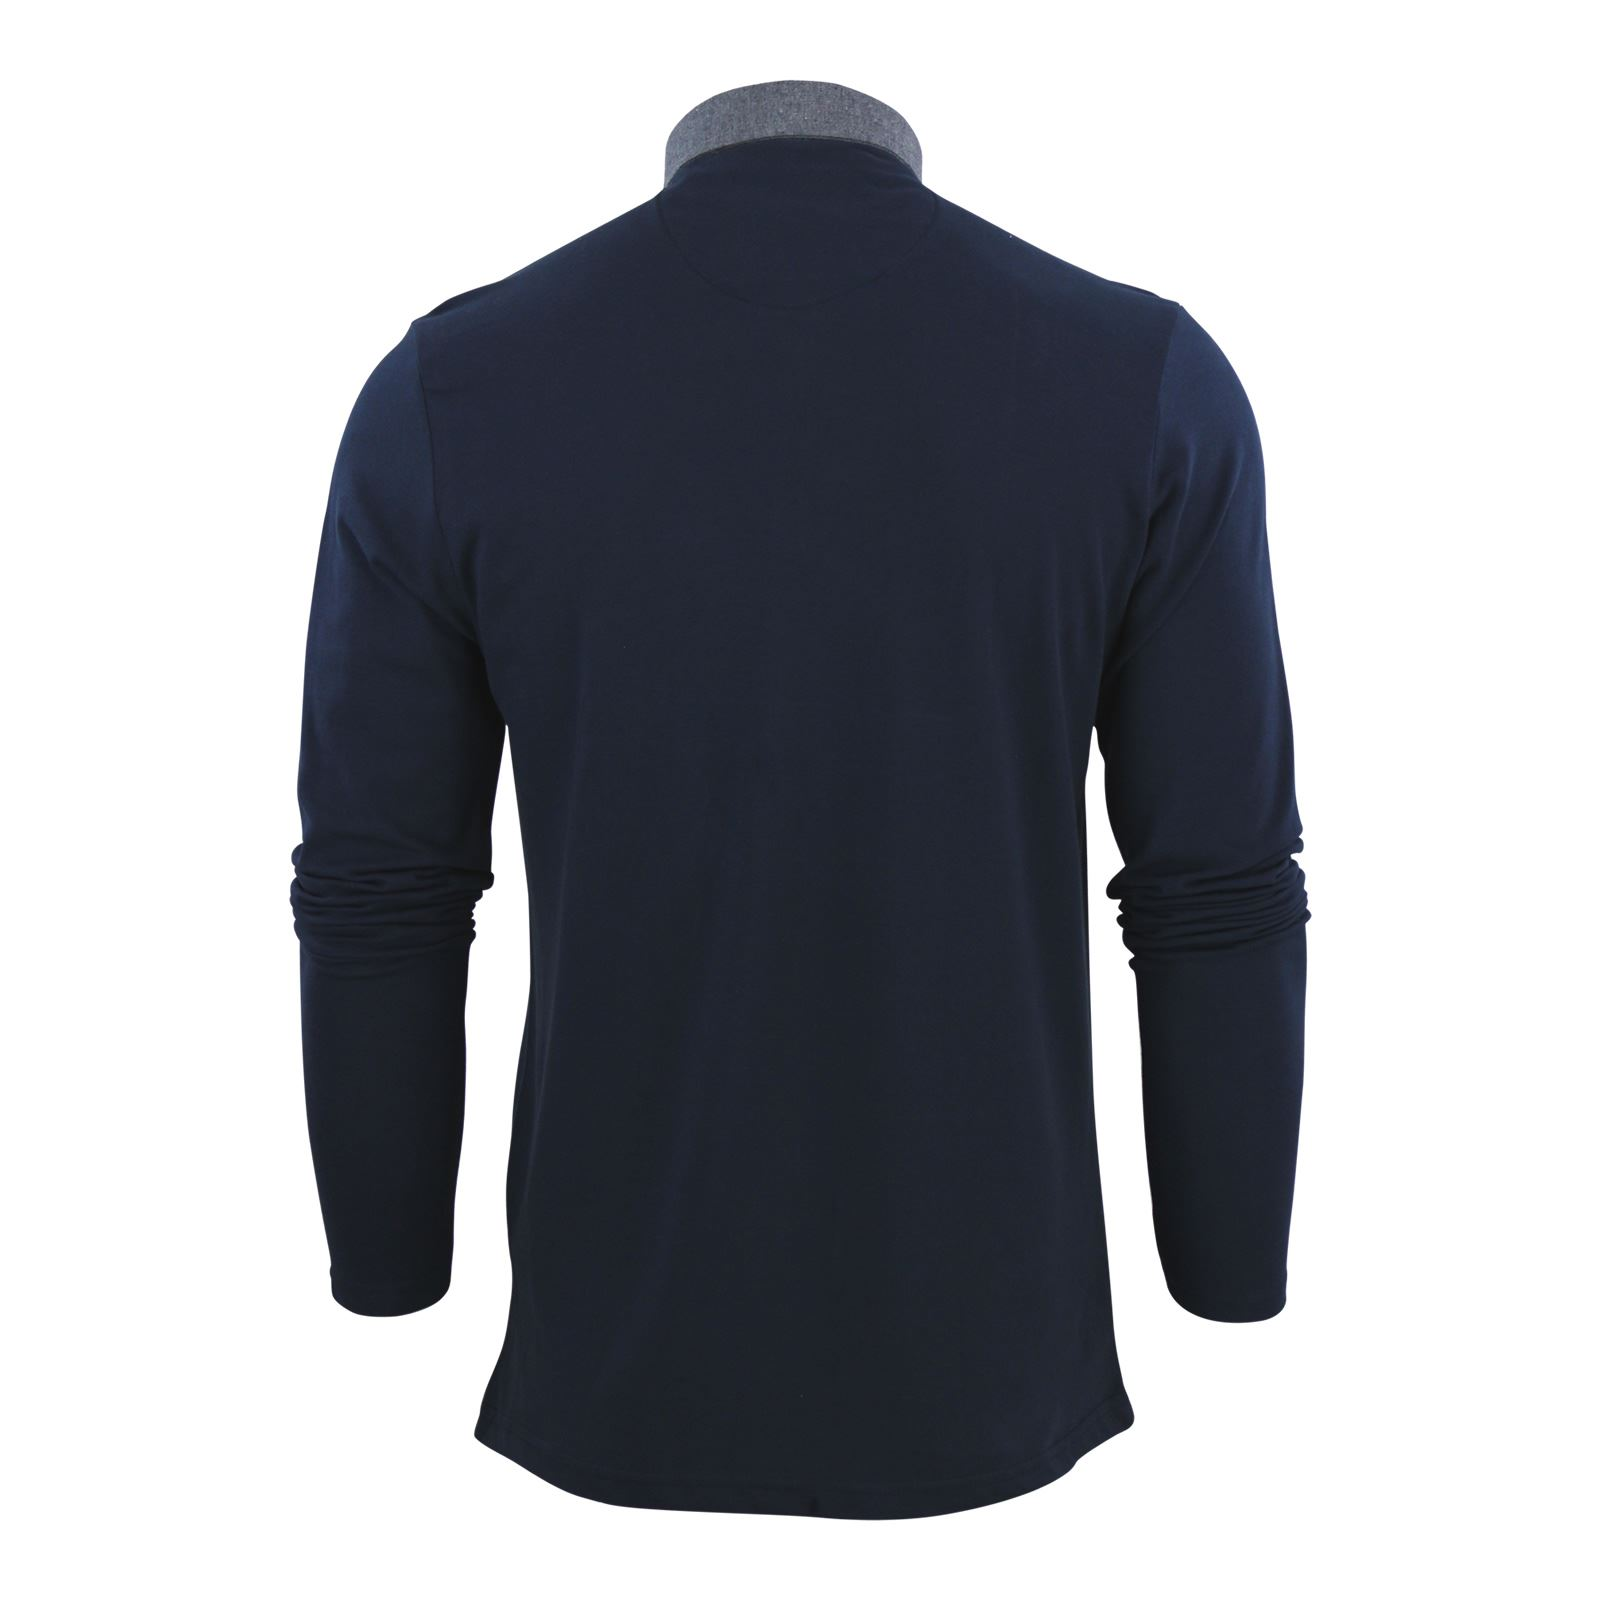 Mens-Polo-T-Shirt-Brave-Soul-Hera-Cotton-Long-Sleeve-Casual-Top thumbnail 6